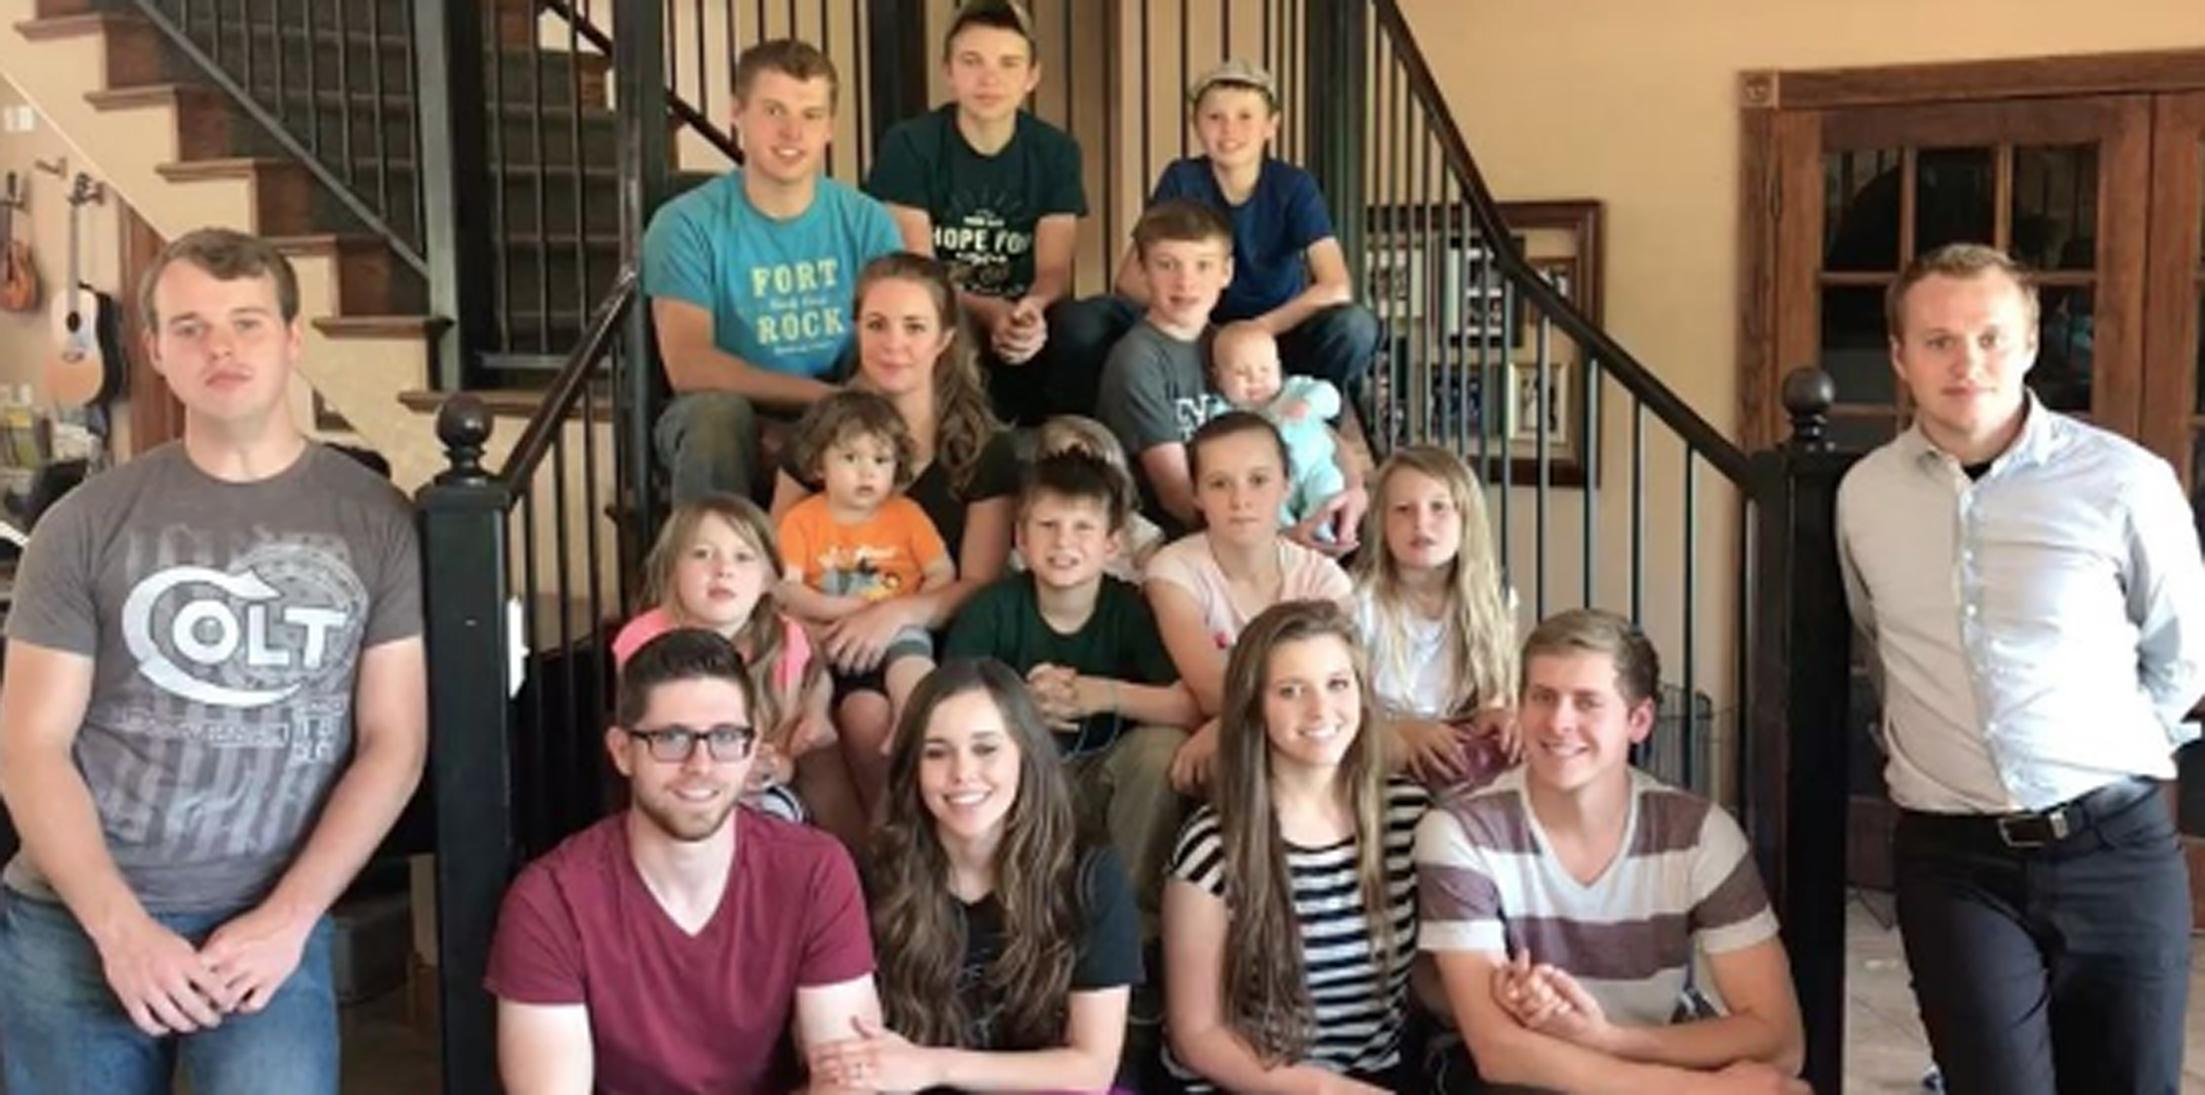 Duggars went all out for fathers day hero